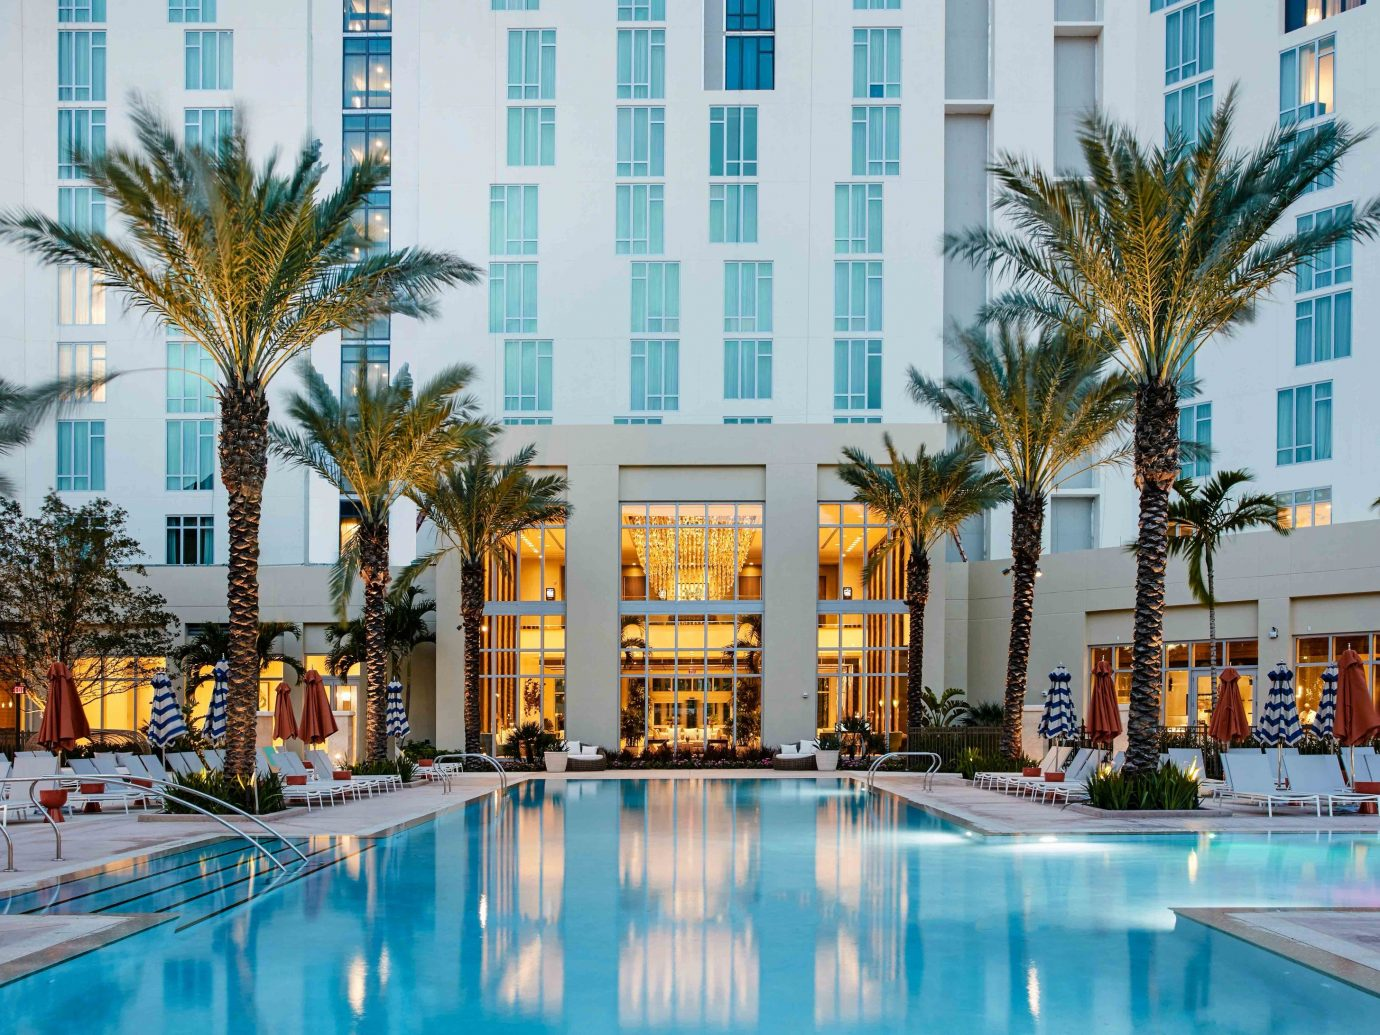 Florida Miami Trip Ideas Weekend Getaways Resort swimming pool mixed use palm tree arecales hotel condominium leisure real estate building apartment tree recreation vacation water City tourism